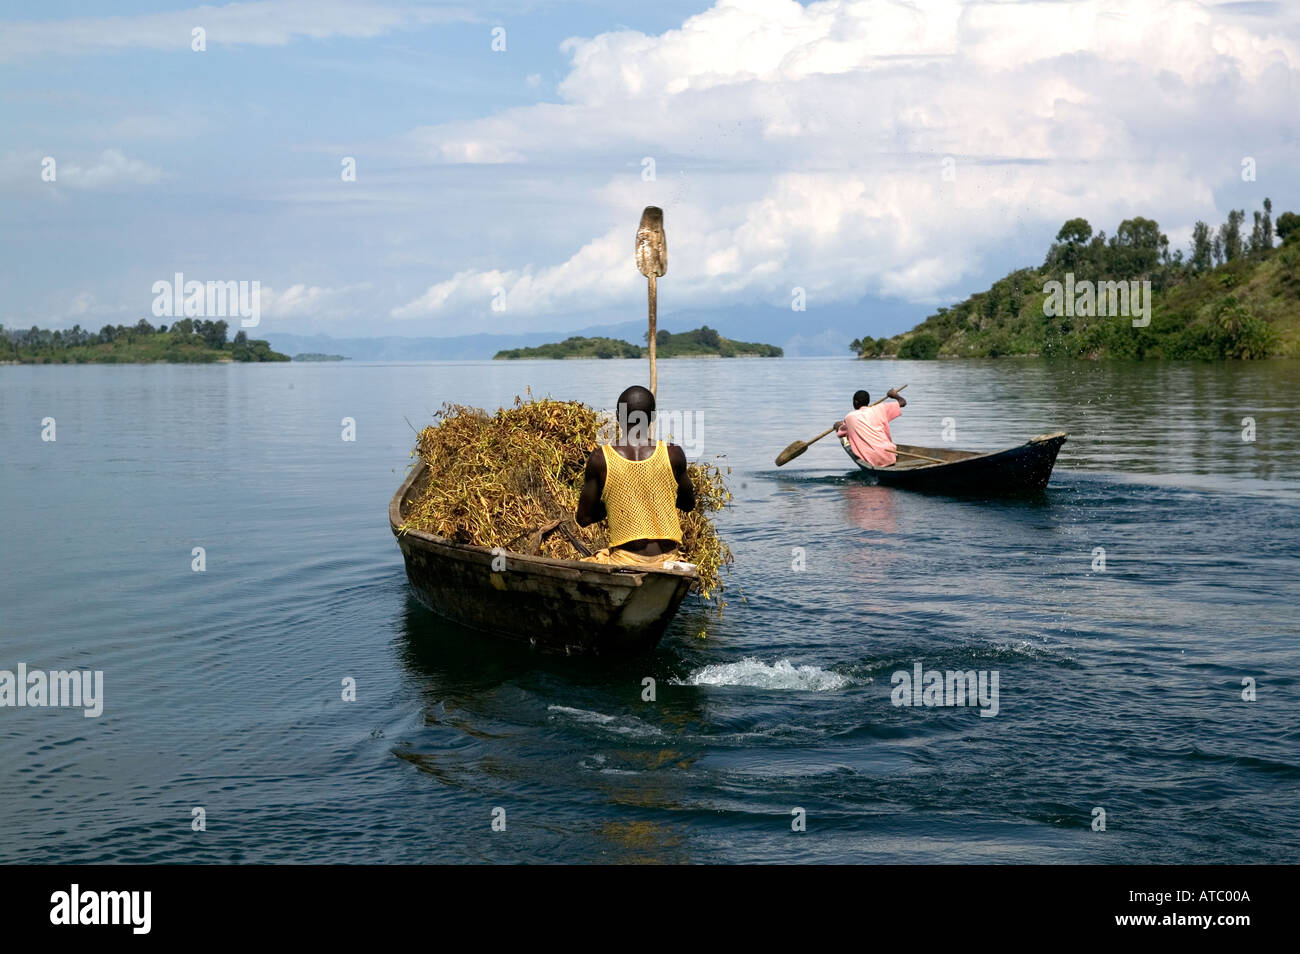 Traditional boatmen carrying soya and other crops in their wooden boats on Lake Kivu in Rwanda Central Africa - Stock Image